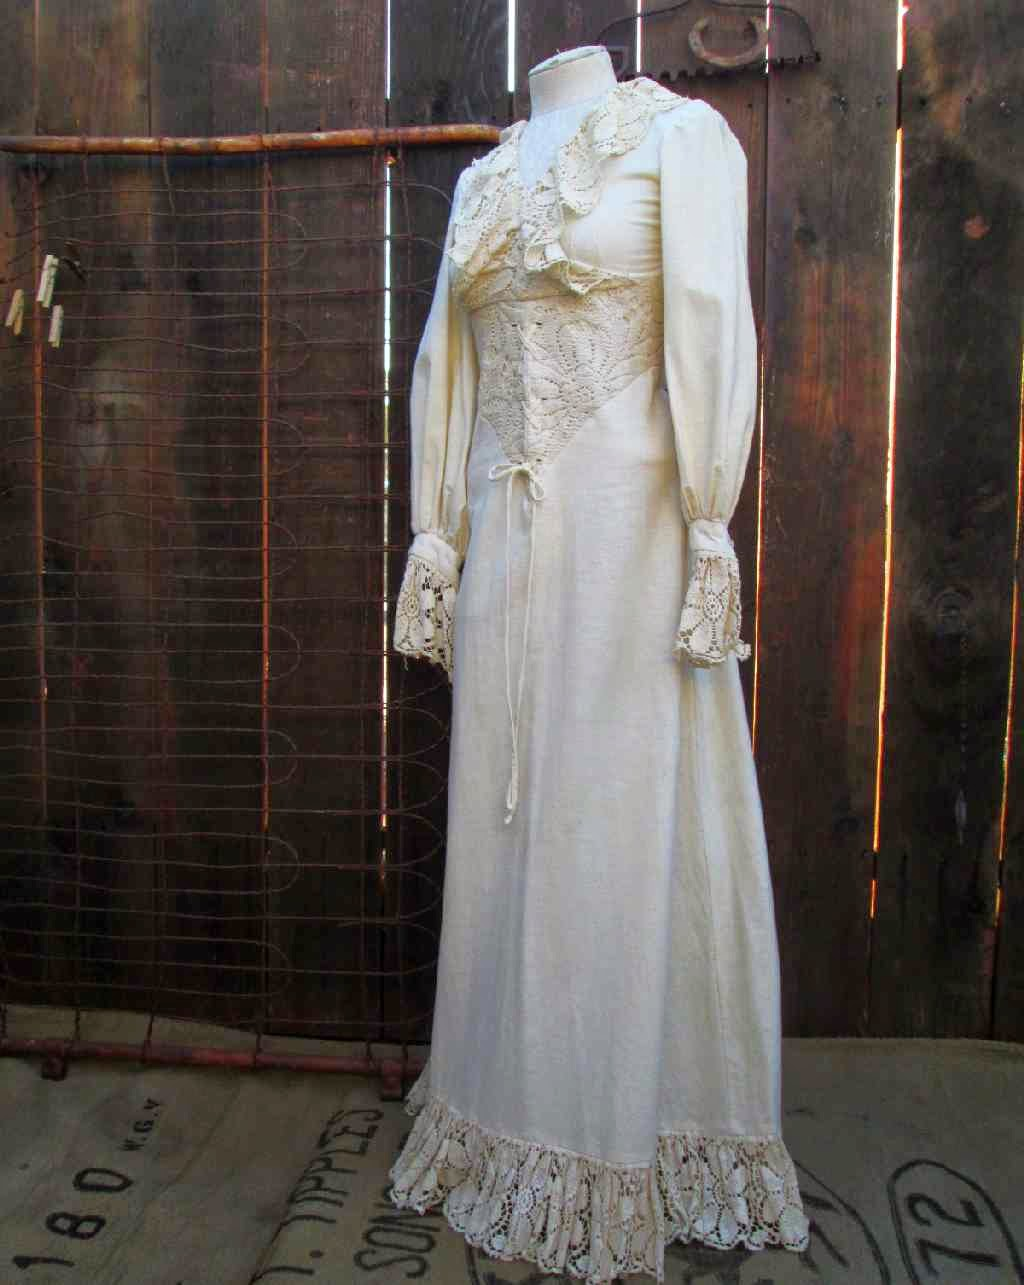 funkoma vintage*the recycled life: White lace and Promises